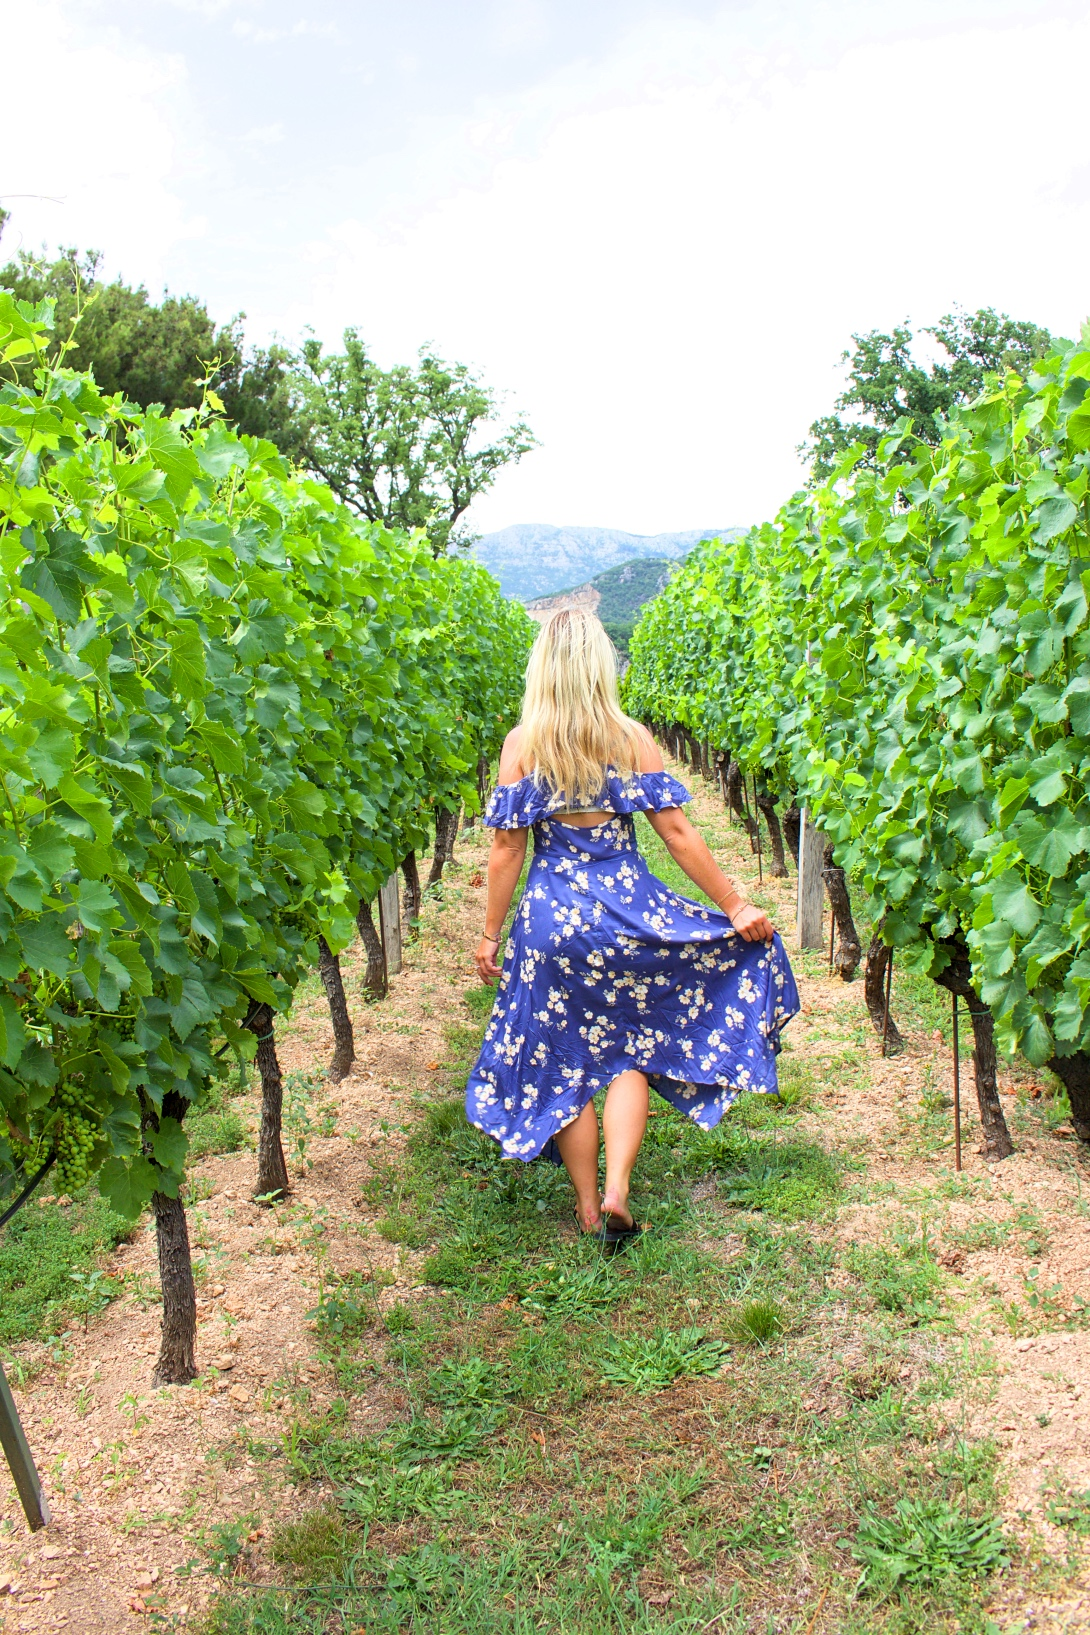 Savina winery